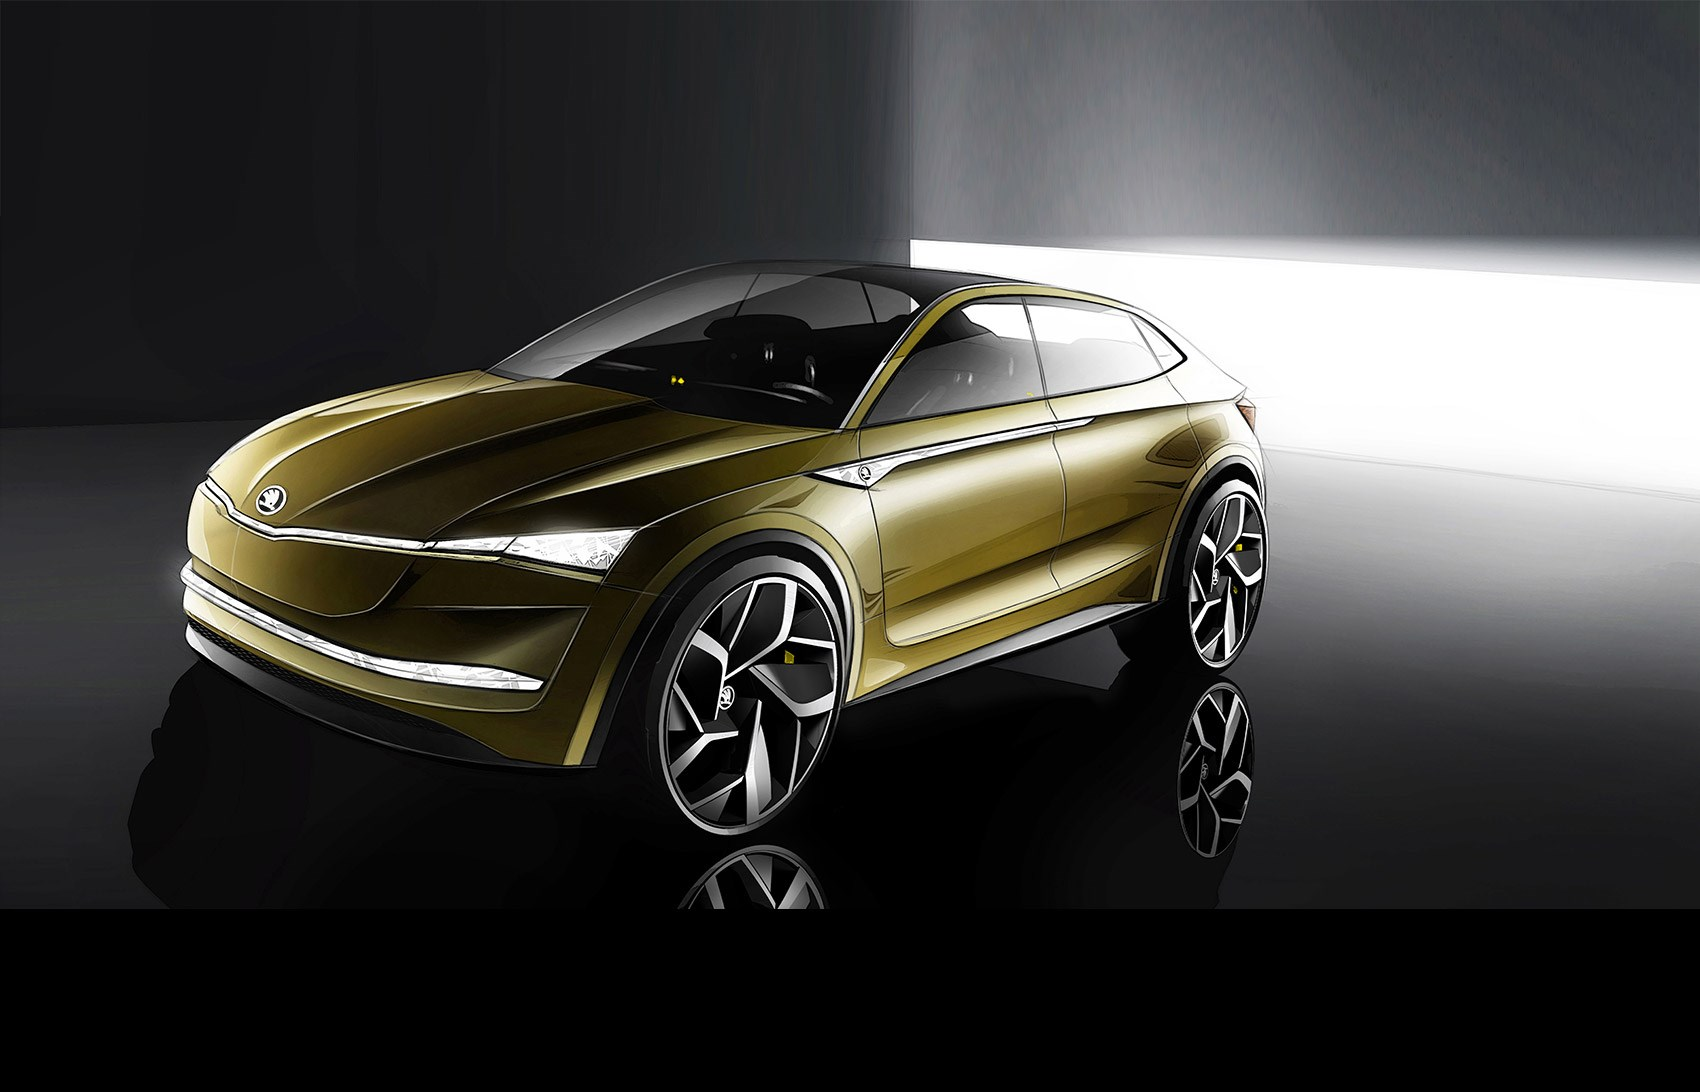 Skoda Vision E: it's the Czechs' first electric car | CAR ...